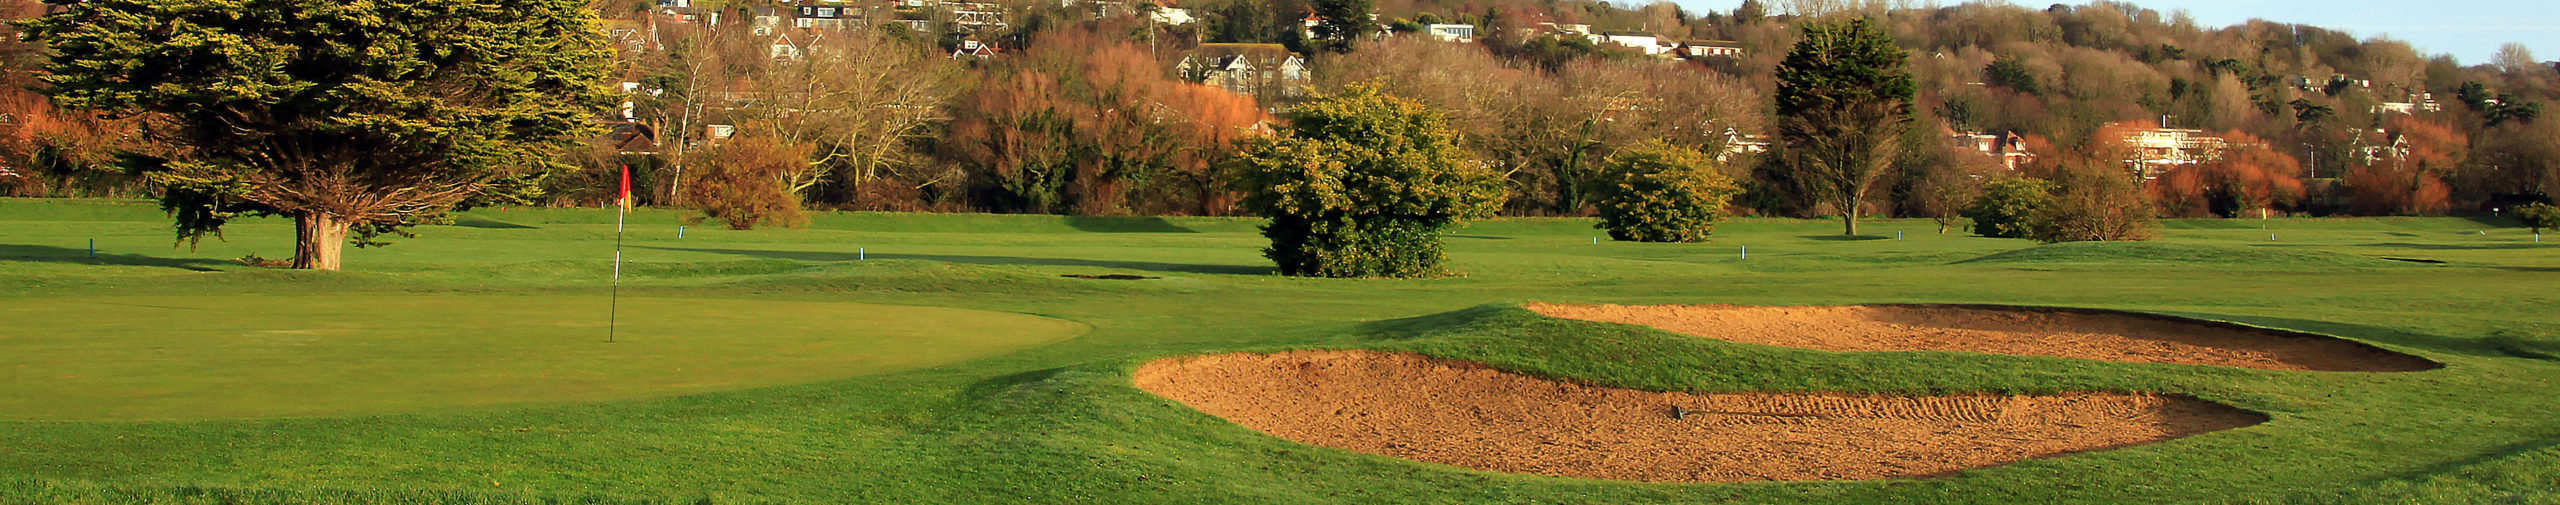 hythe-links-golf-club-kent